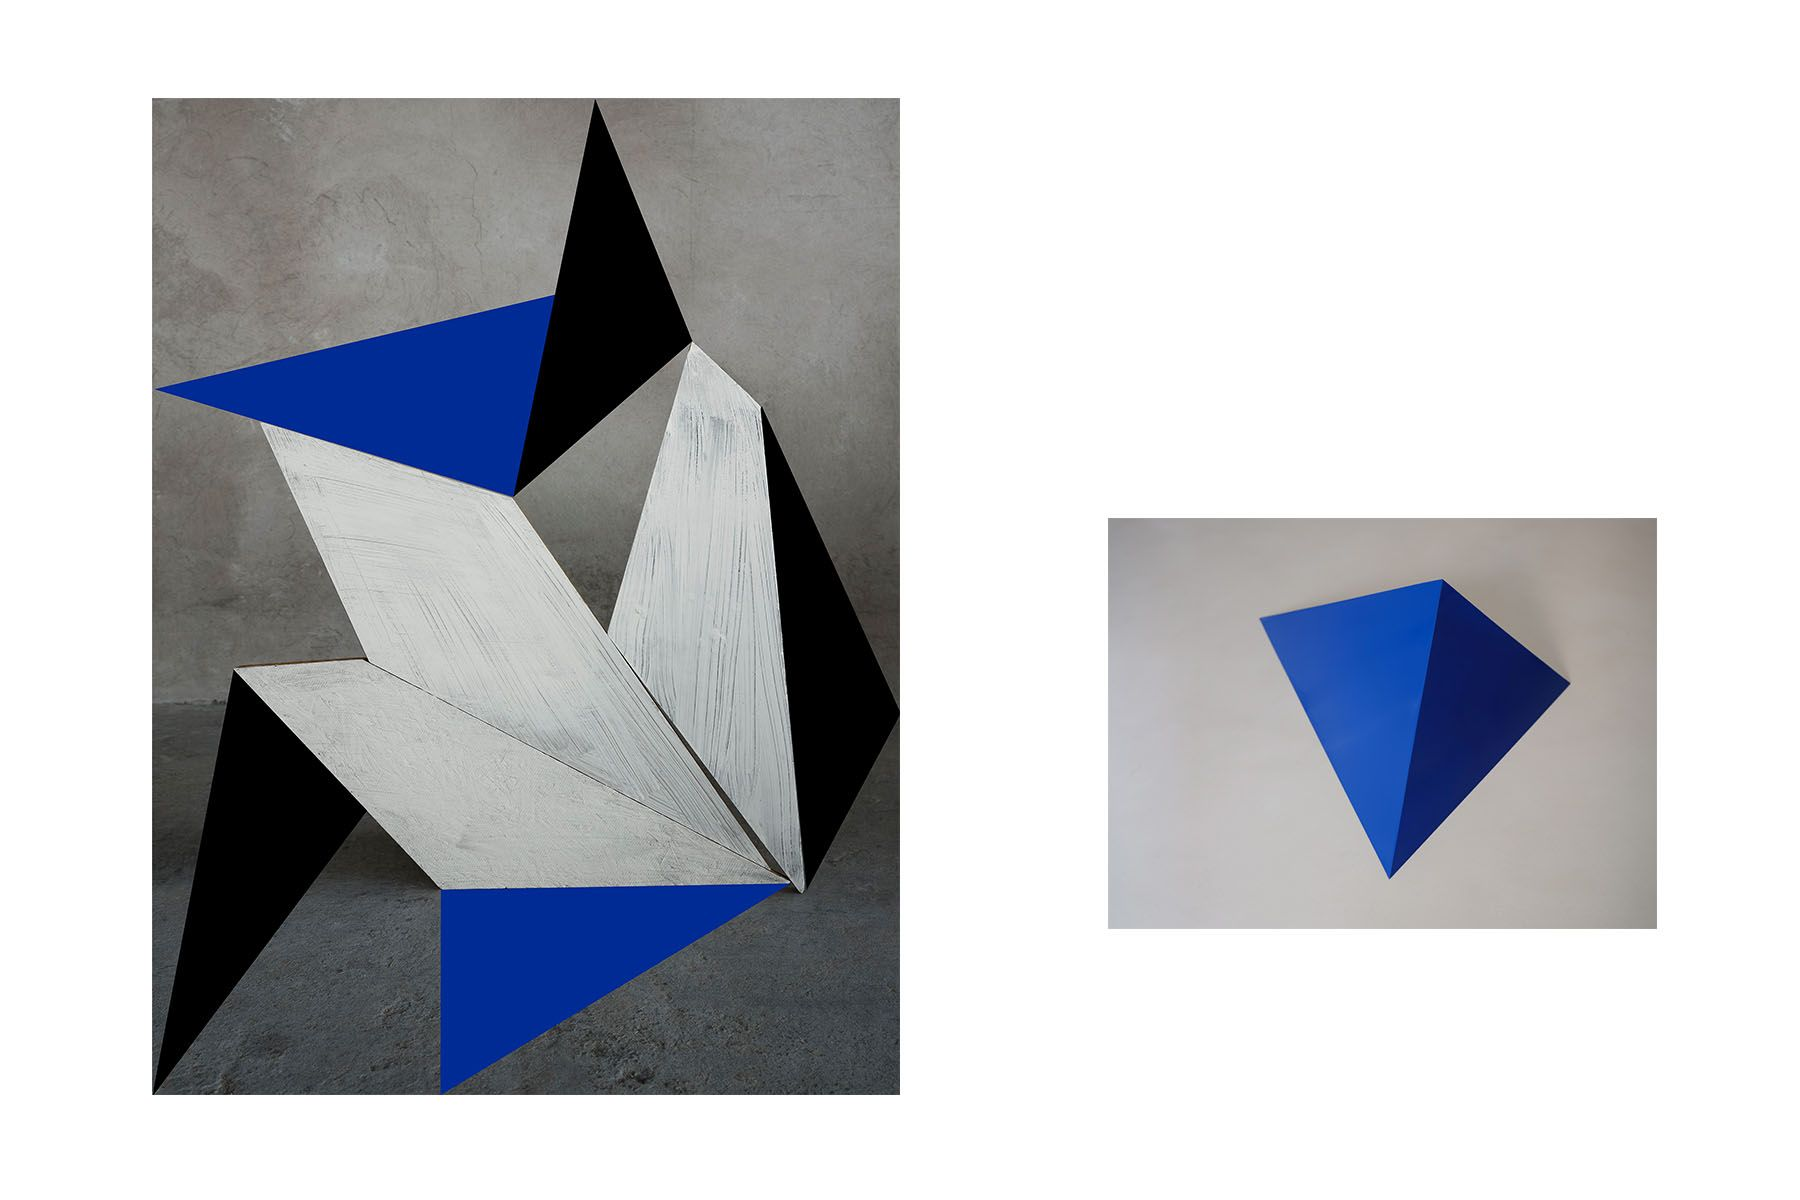 Blue Song, 2019 (left) /  Blue Pyramid Sculpture (right)